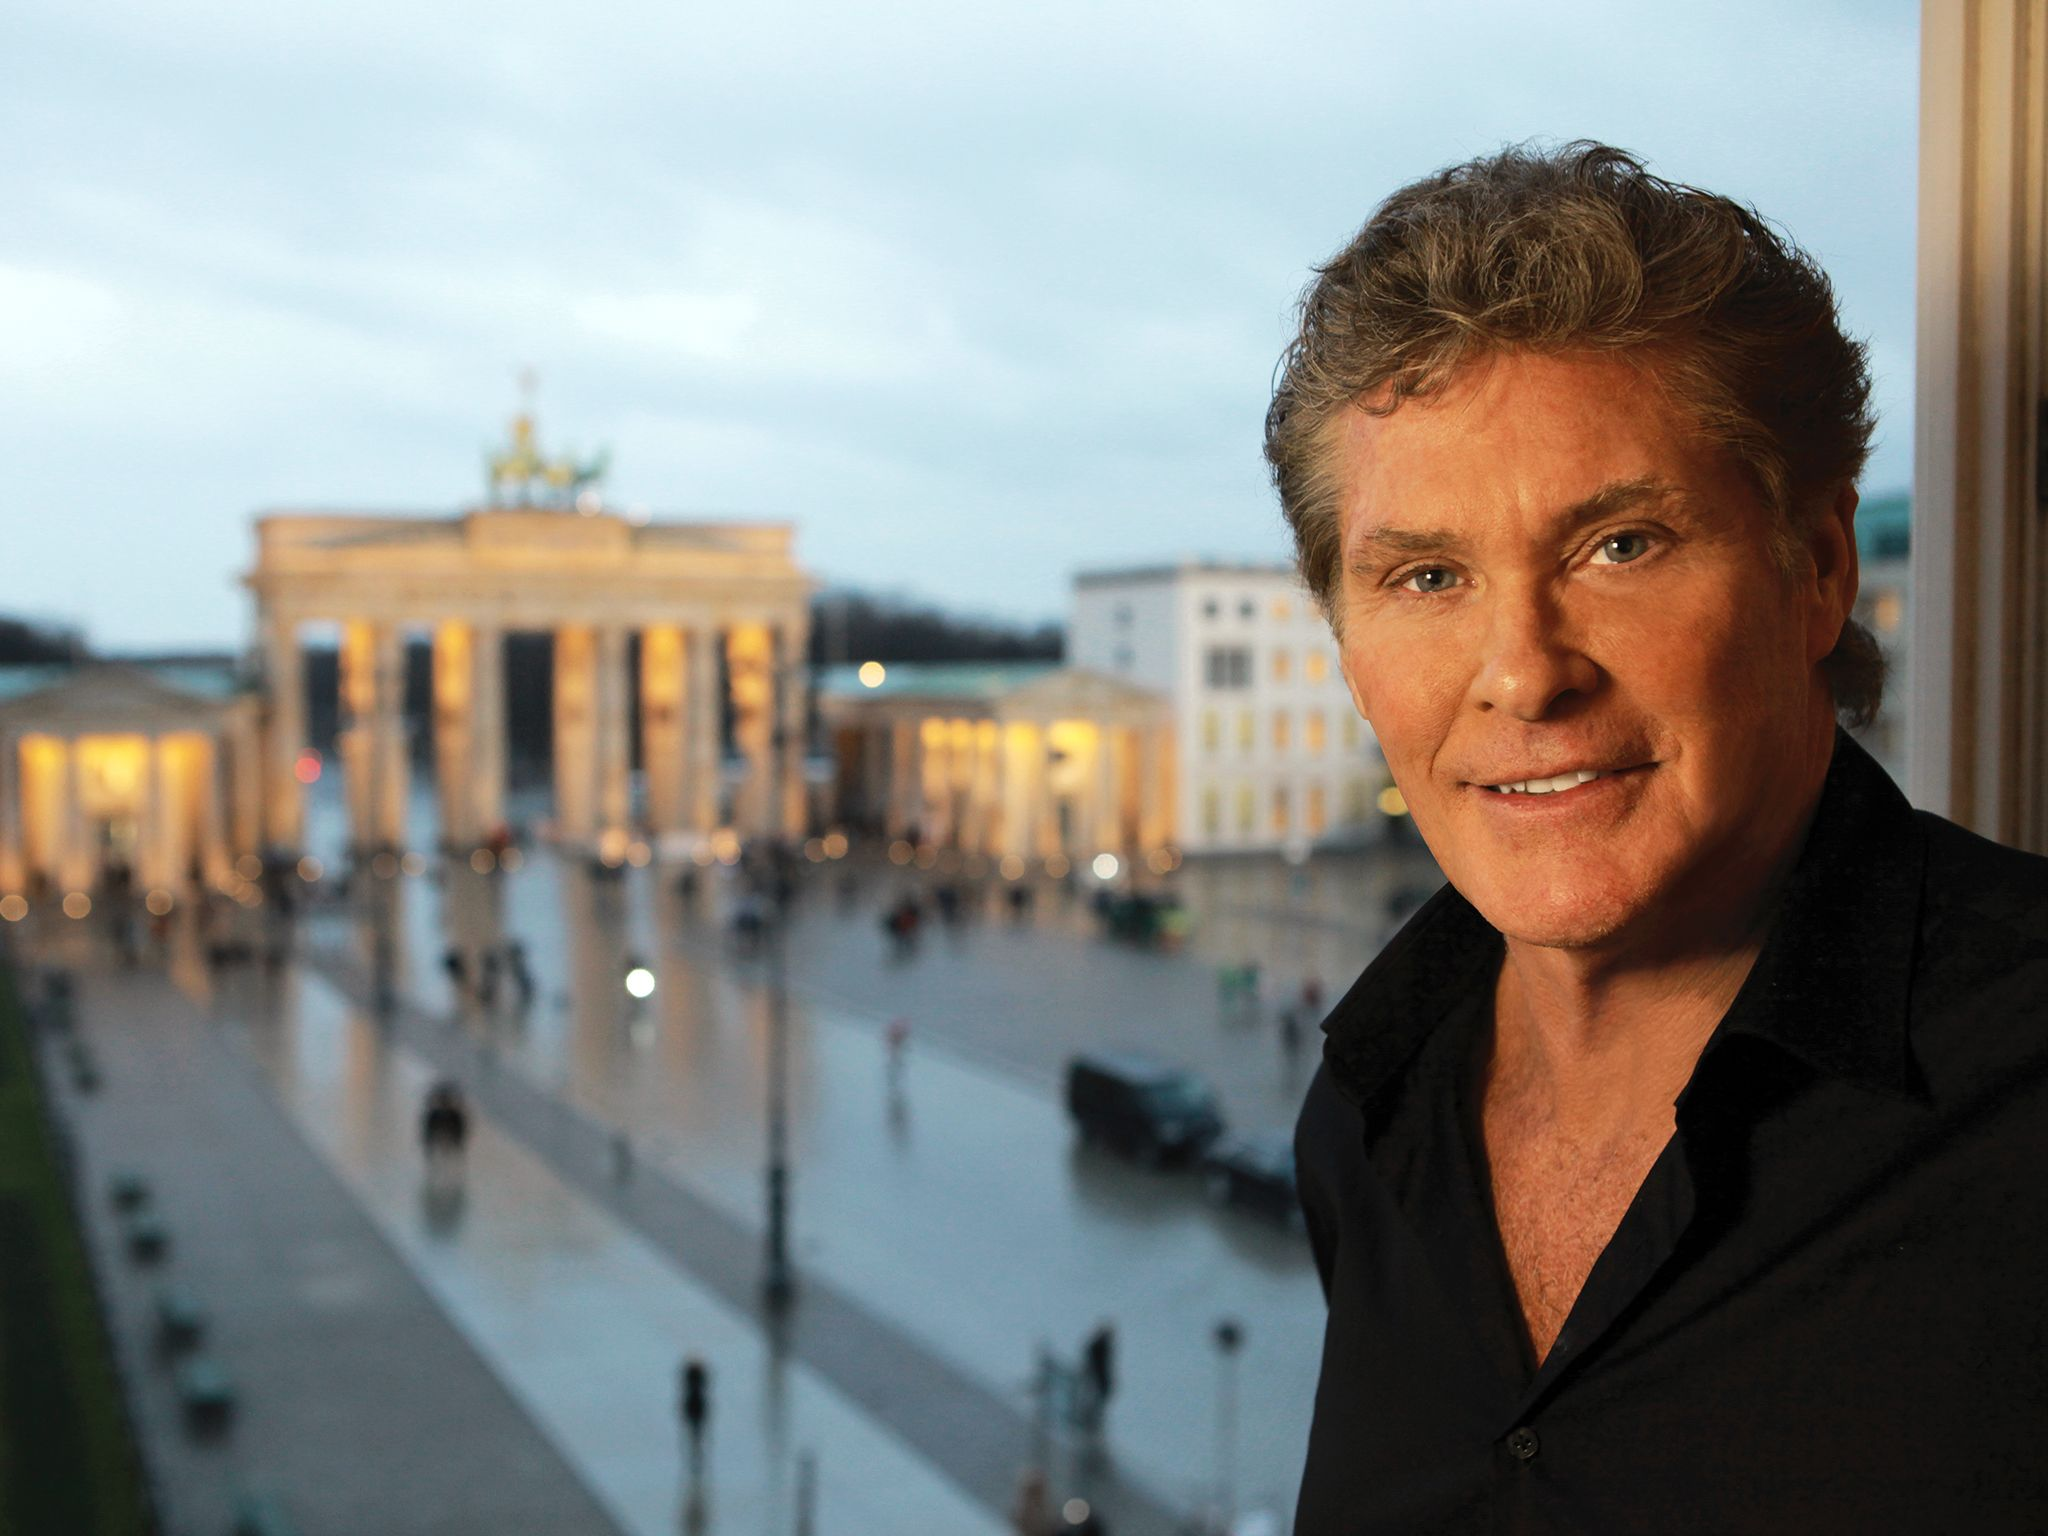 Berlin, Germany: David Hasselhoff in his hotel room overlooking the Brandenburg Gate. This image ... [Photo of the day - November, 2014]